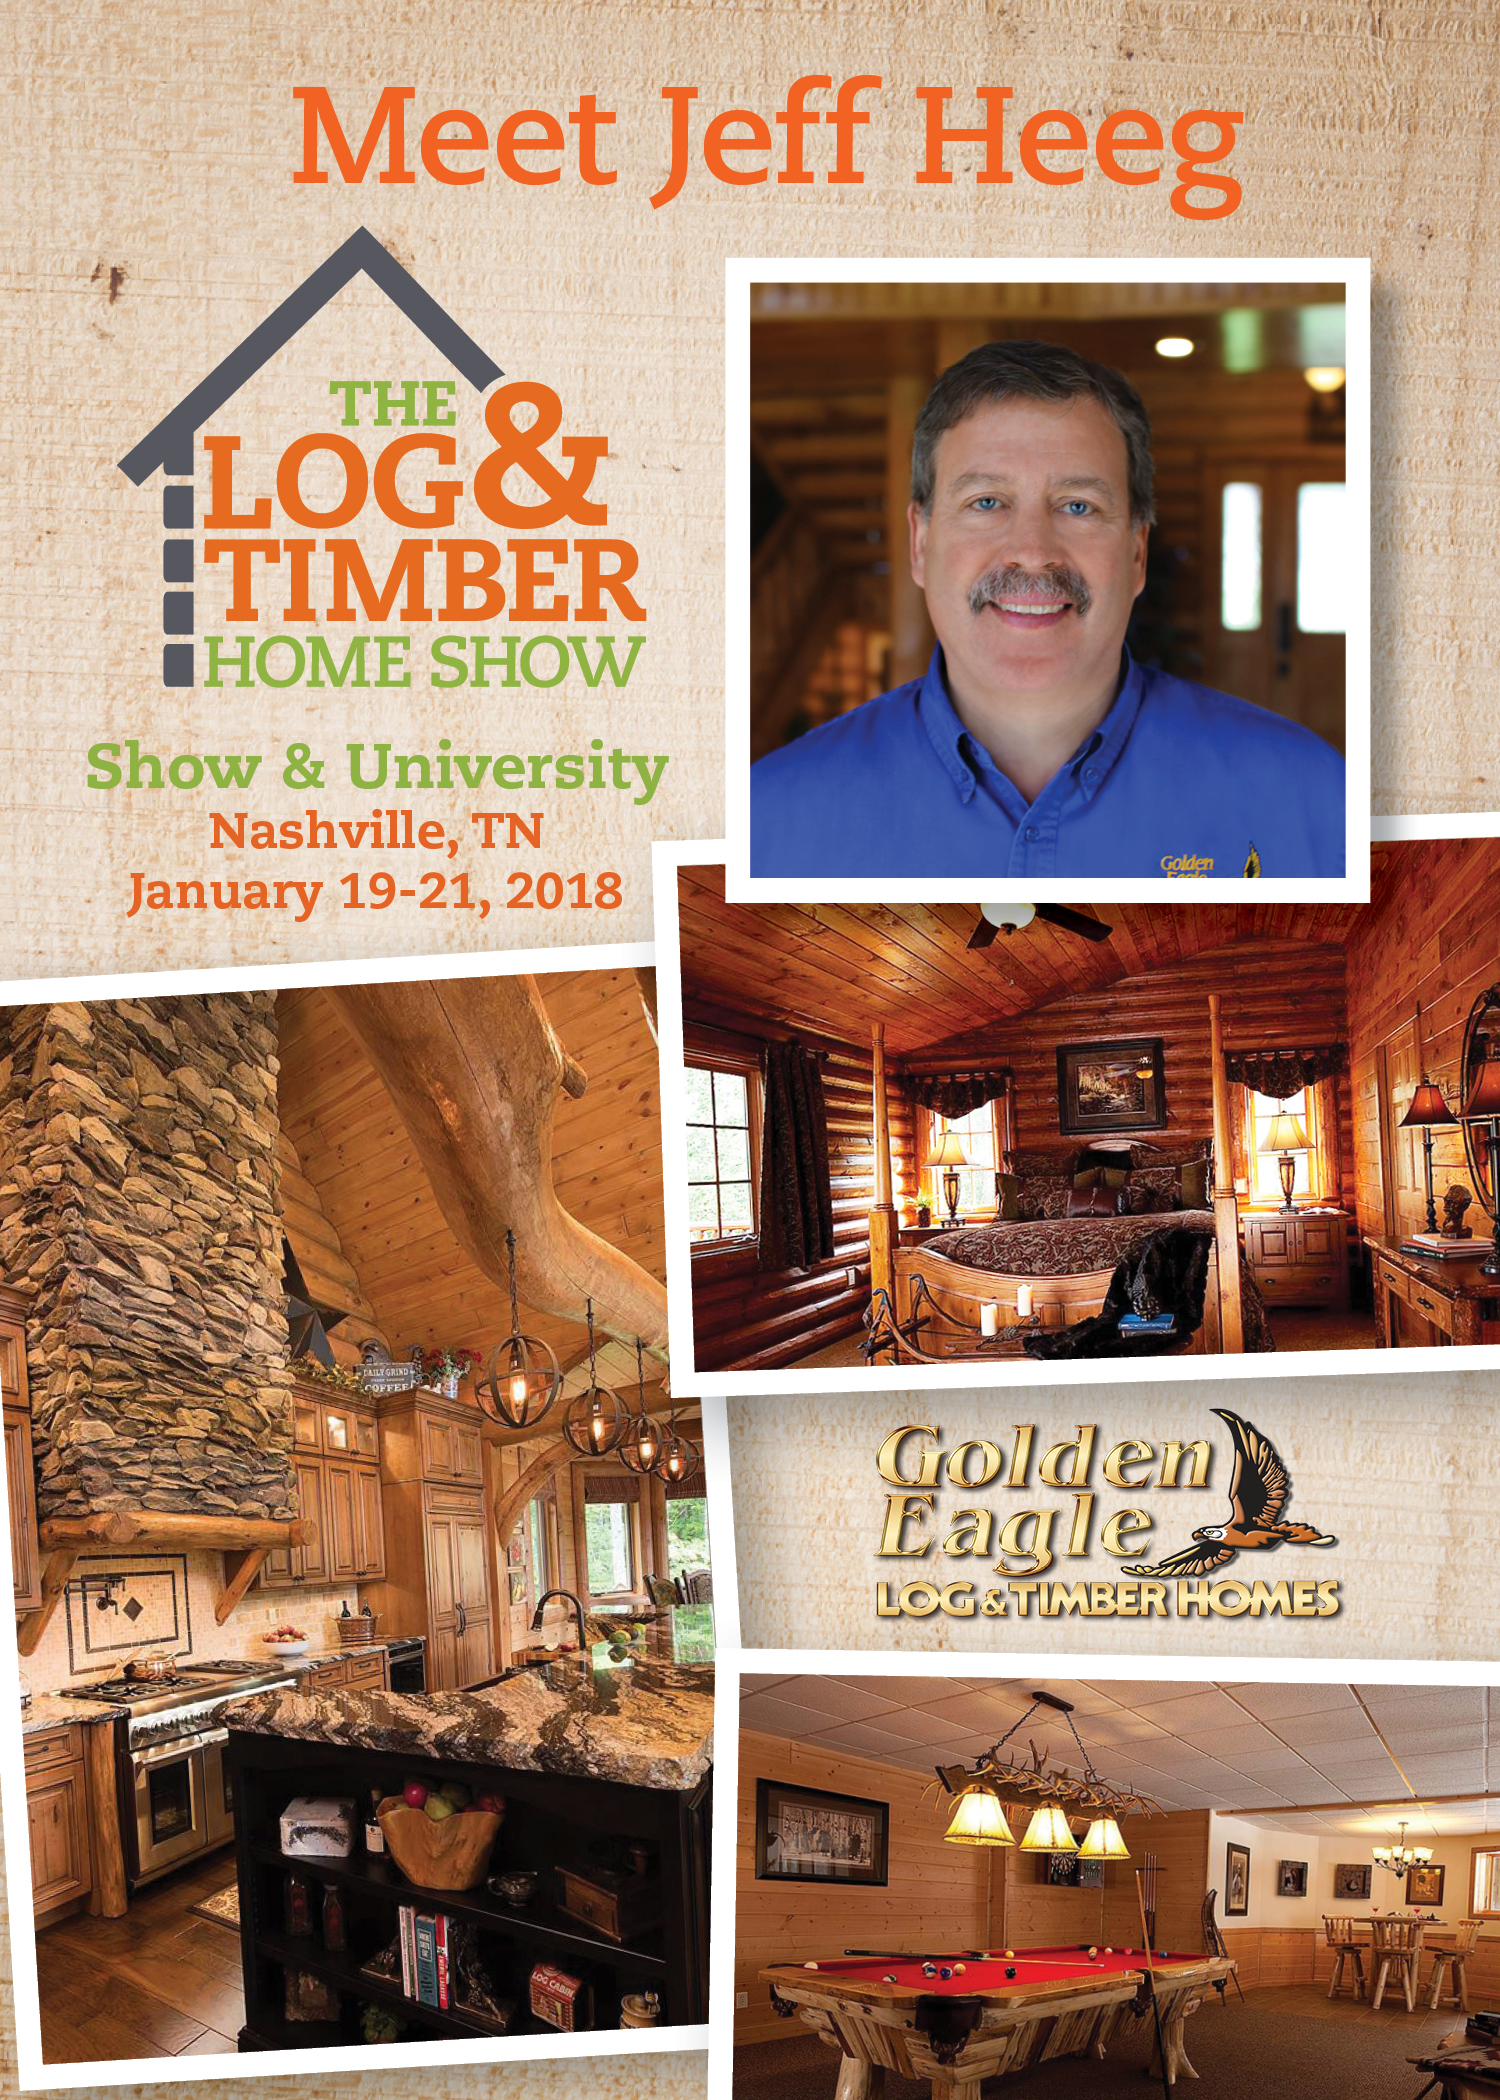 Jeff Heeg | Nashville, TN 2018 | Log & Timber Home Show | Workshop Spotlight | January 19-21, 2018